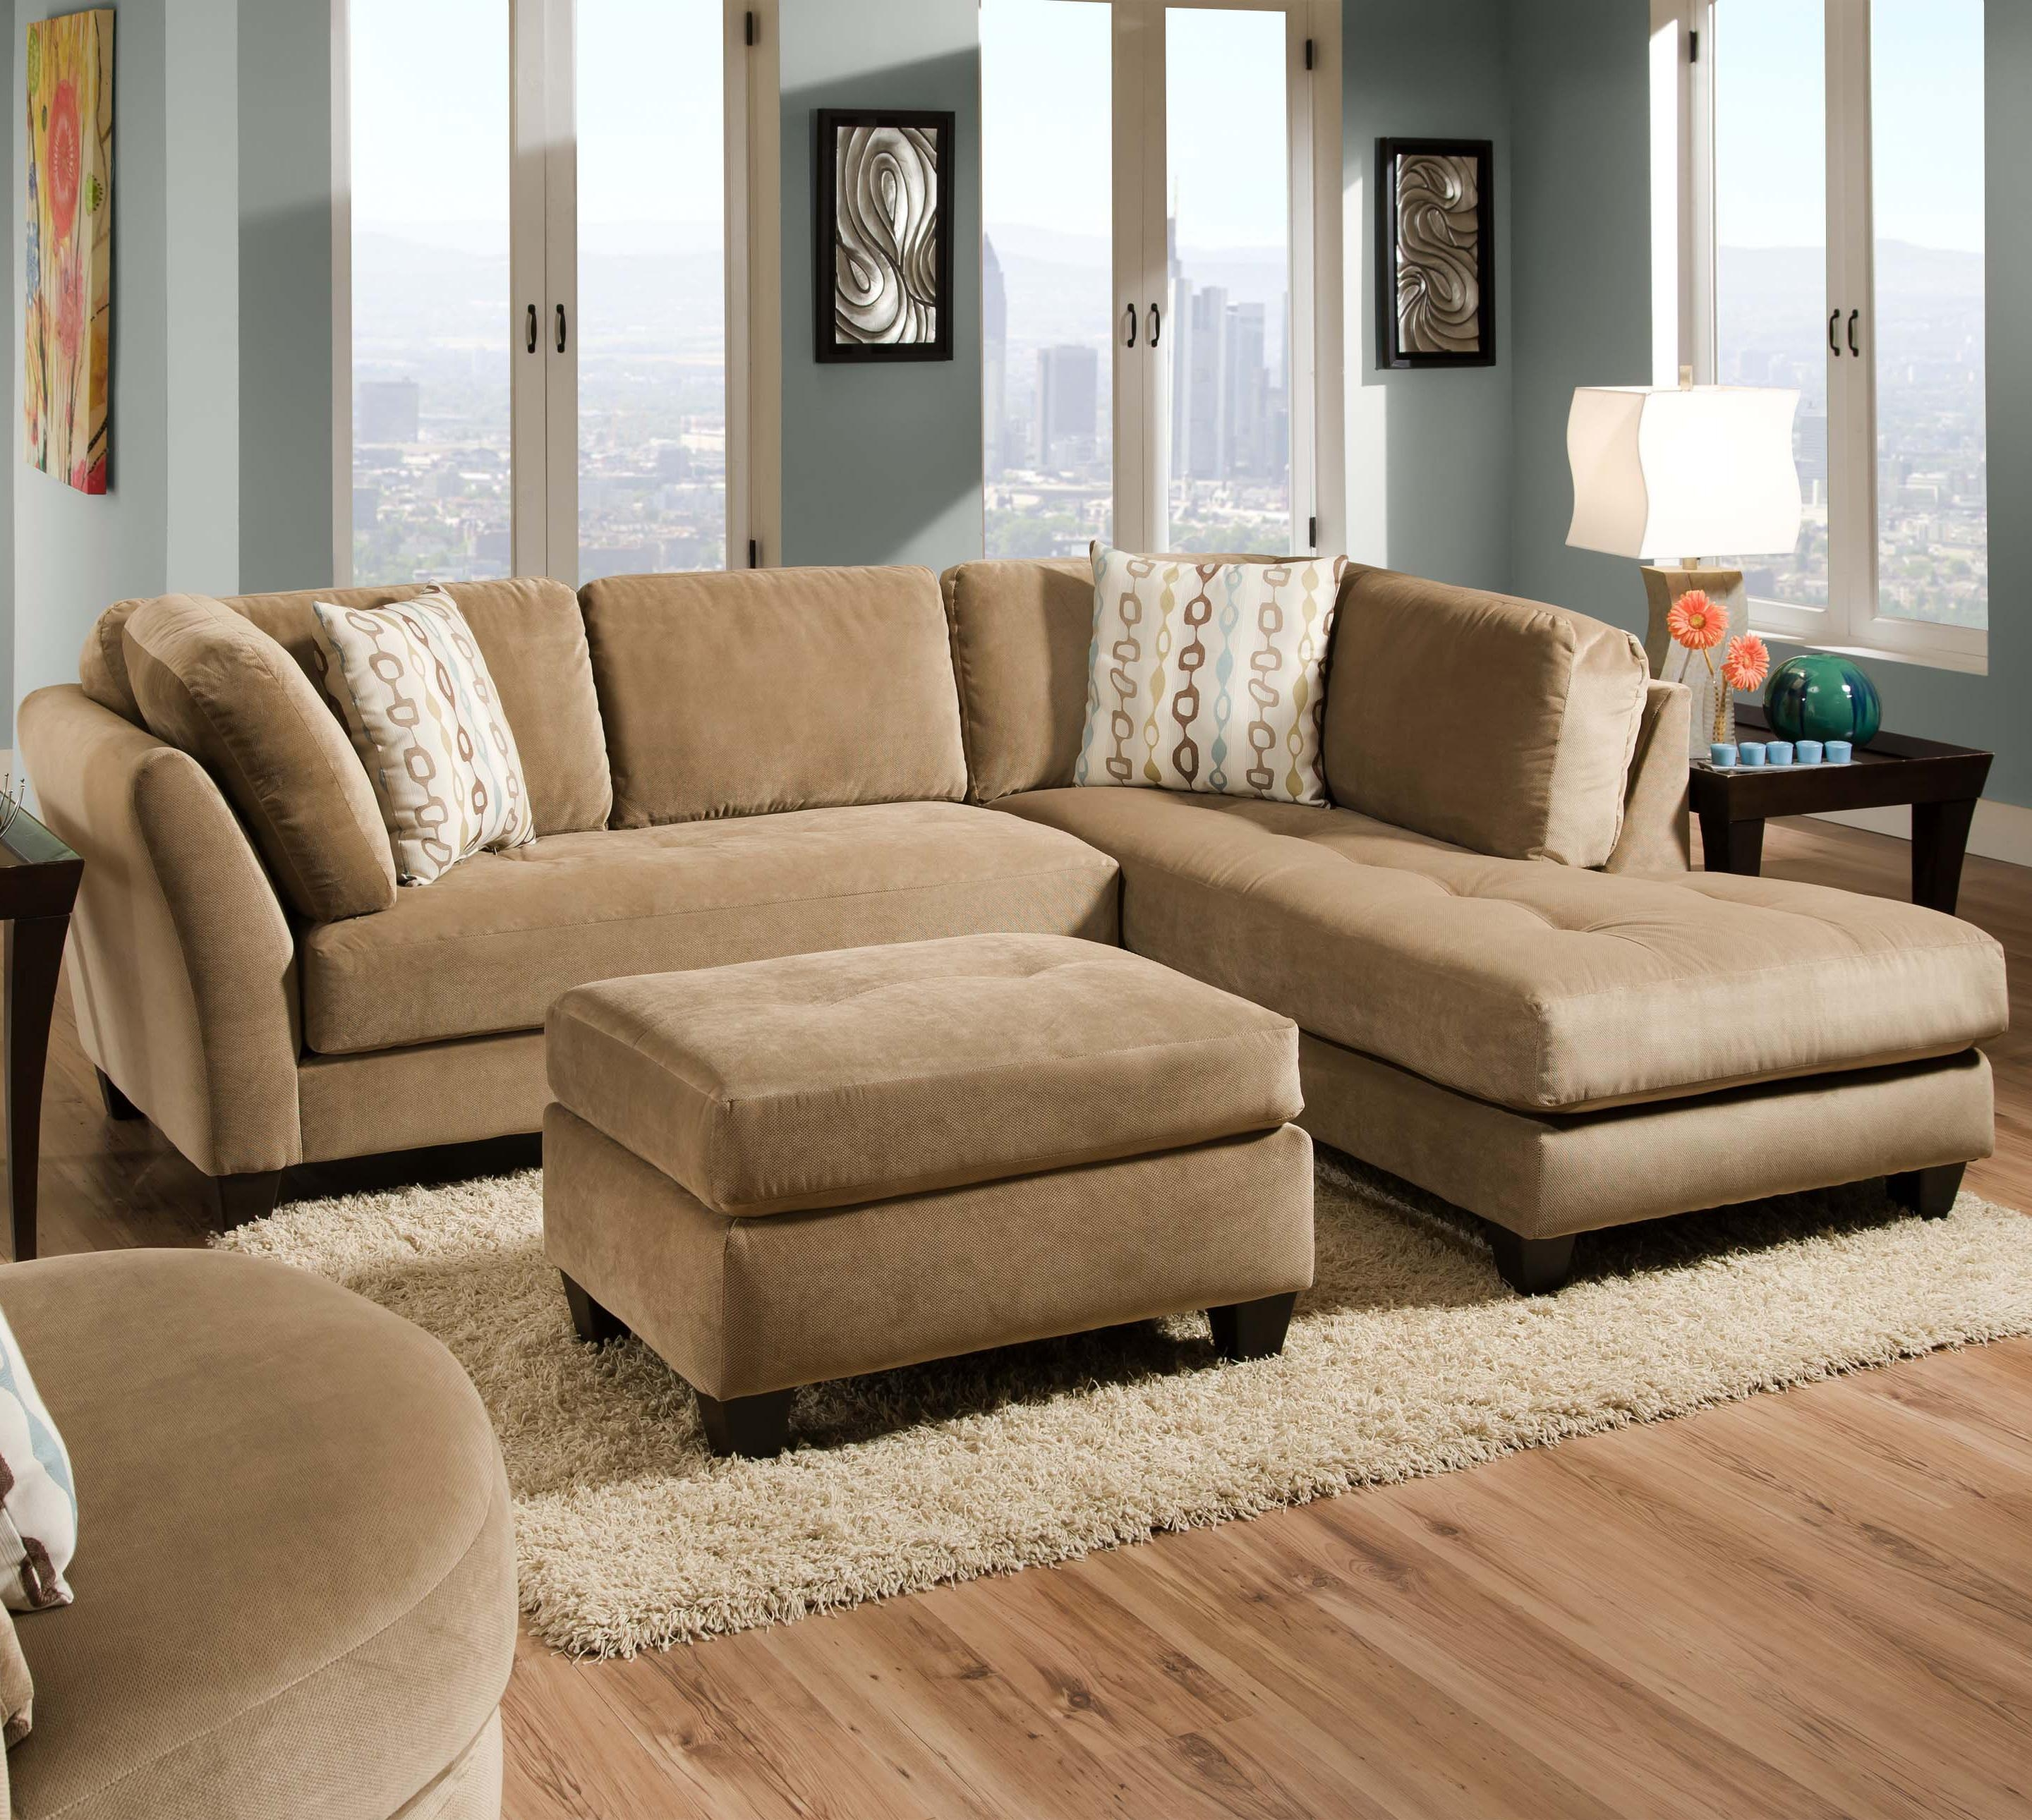 Leather Corinthian Sectionals Sofas 12 Outstanding Corinthian Regarding Corinthian Sectional Sofas (Image 10 of 15)